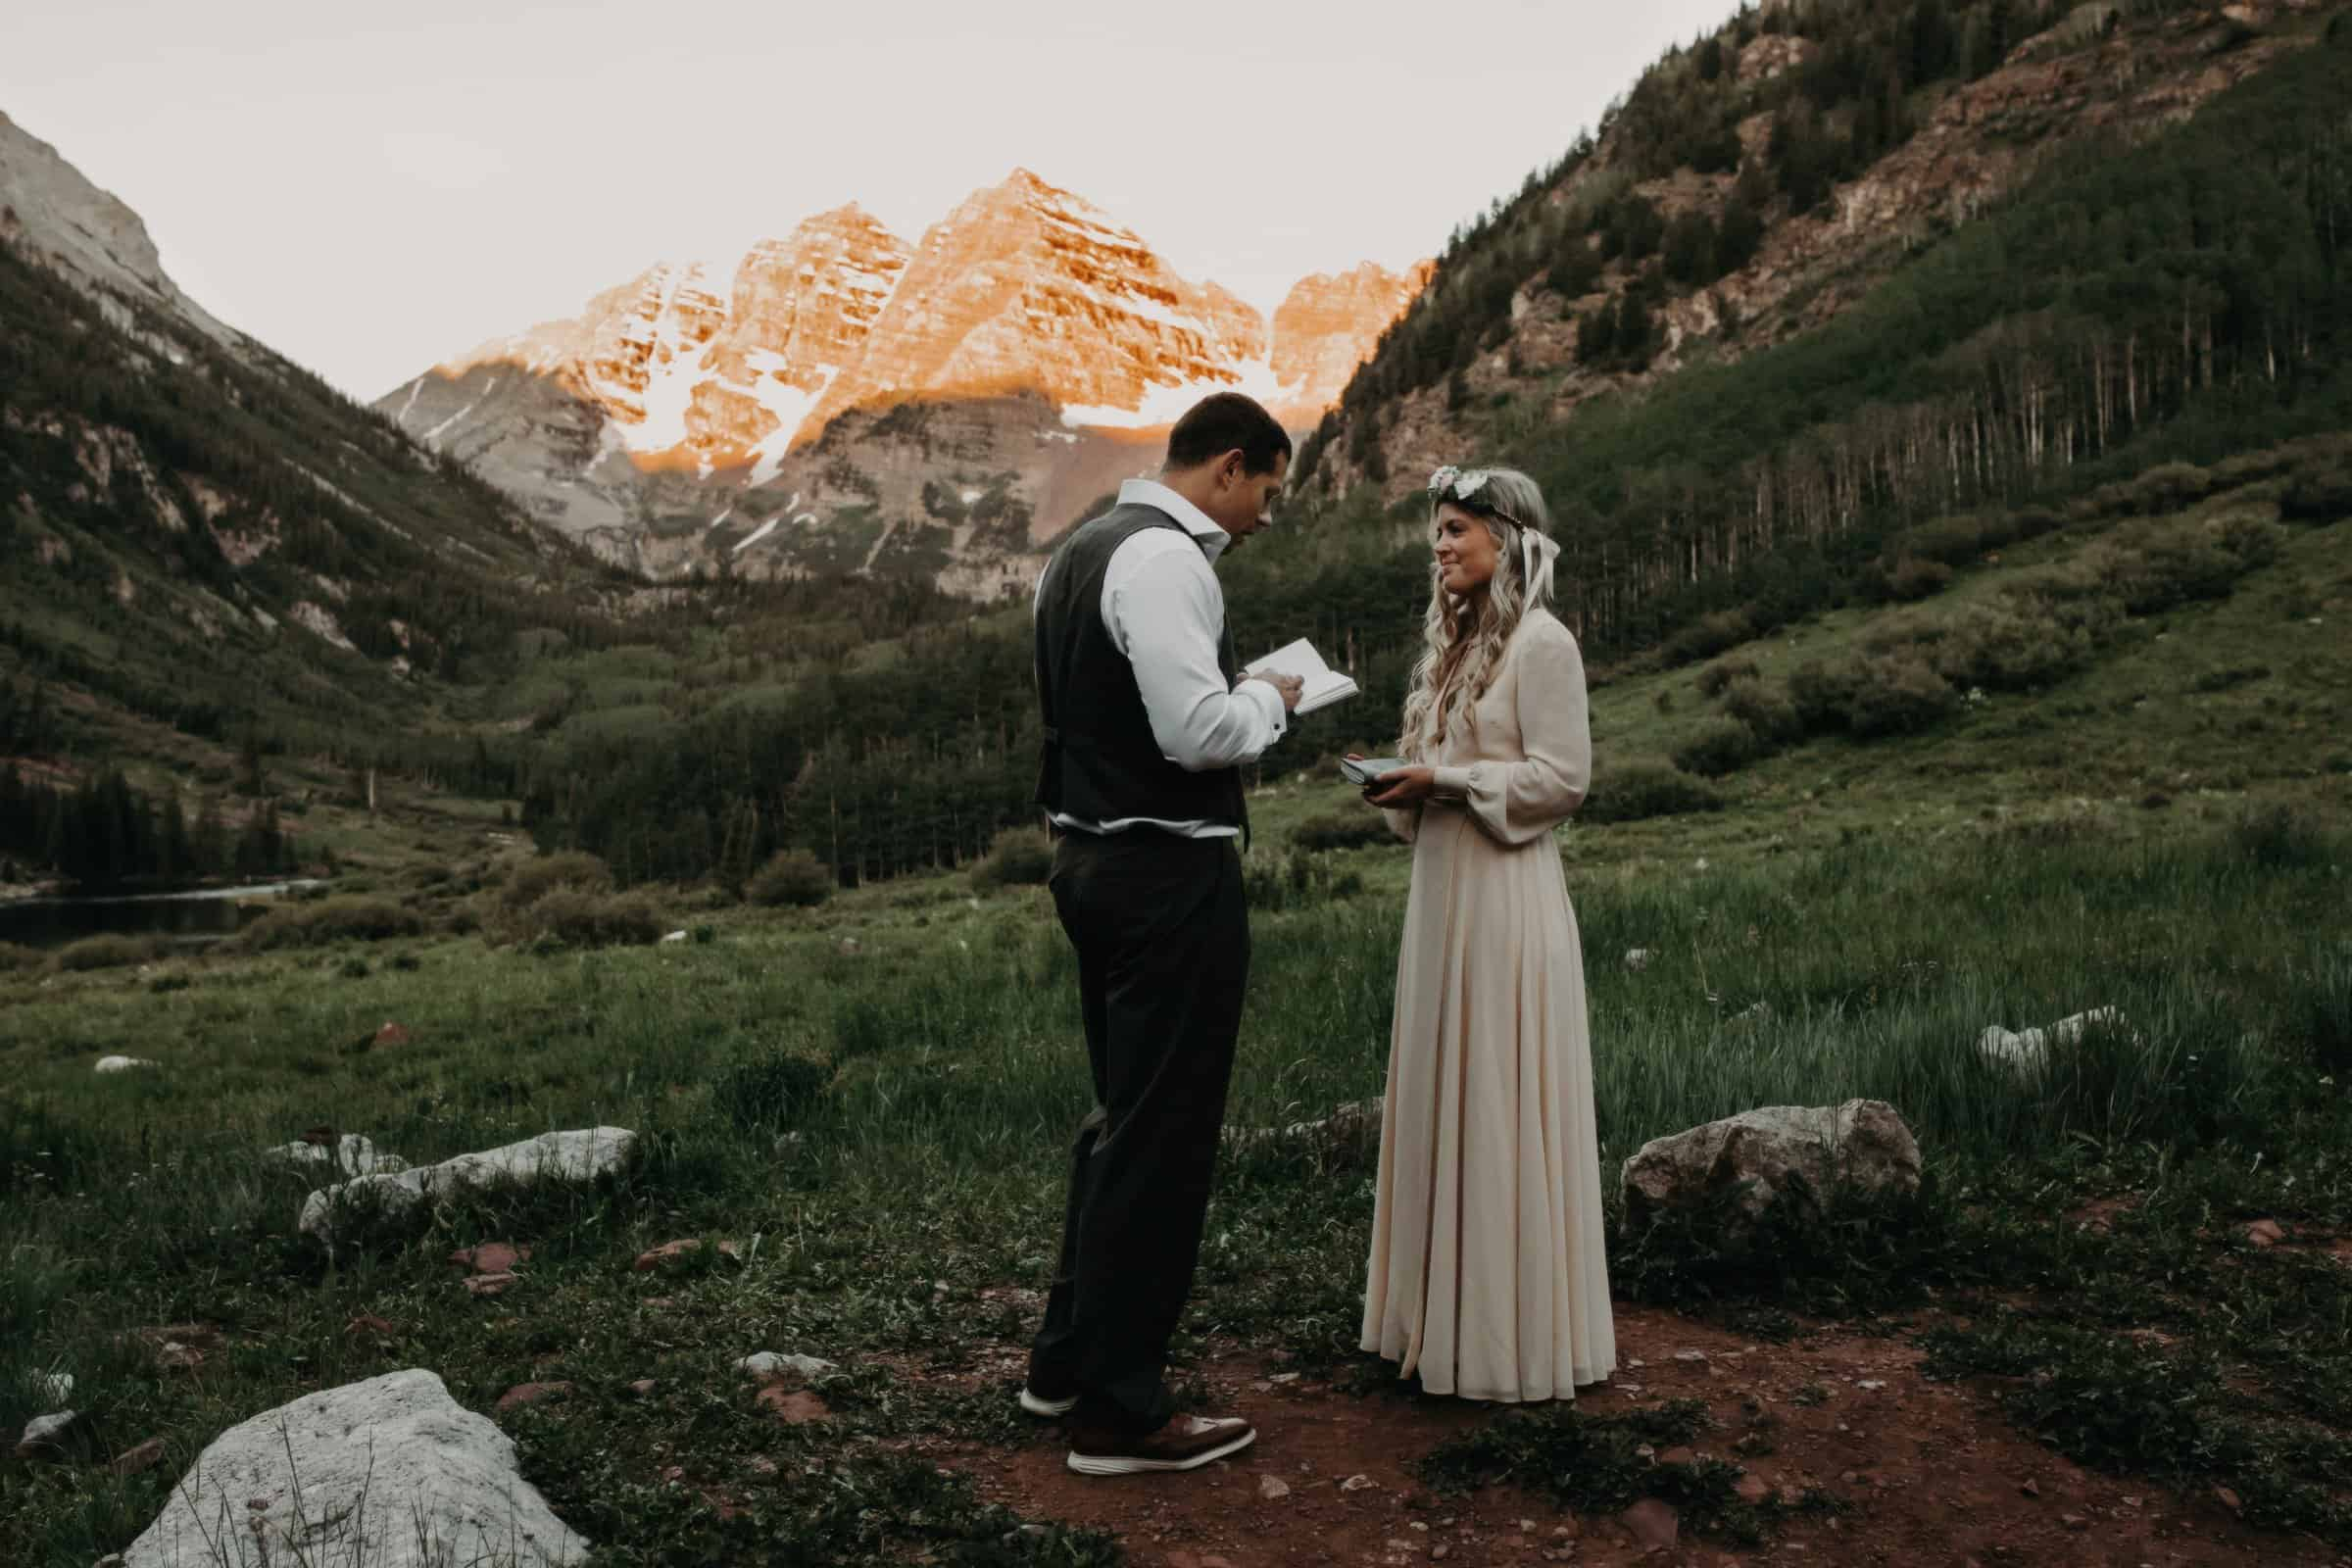 couple exchanging vows during their vow renewal at the Colorado Maroon Bells during sunrise